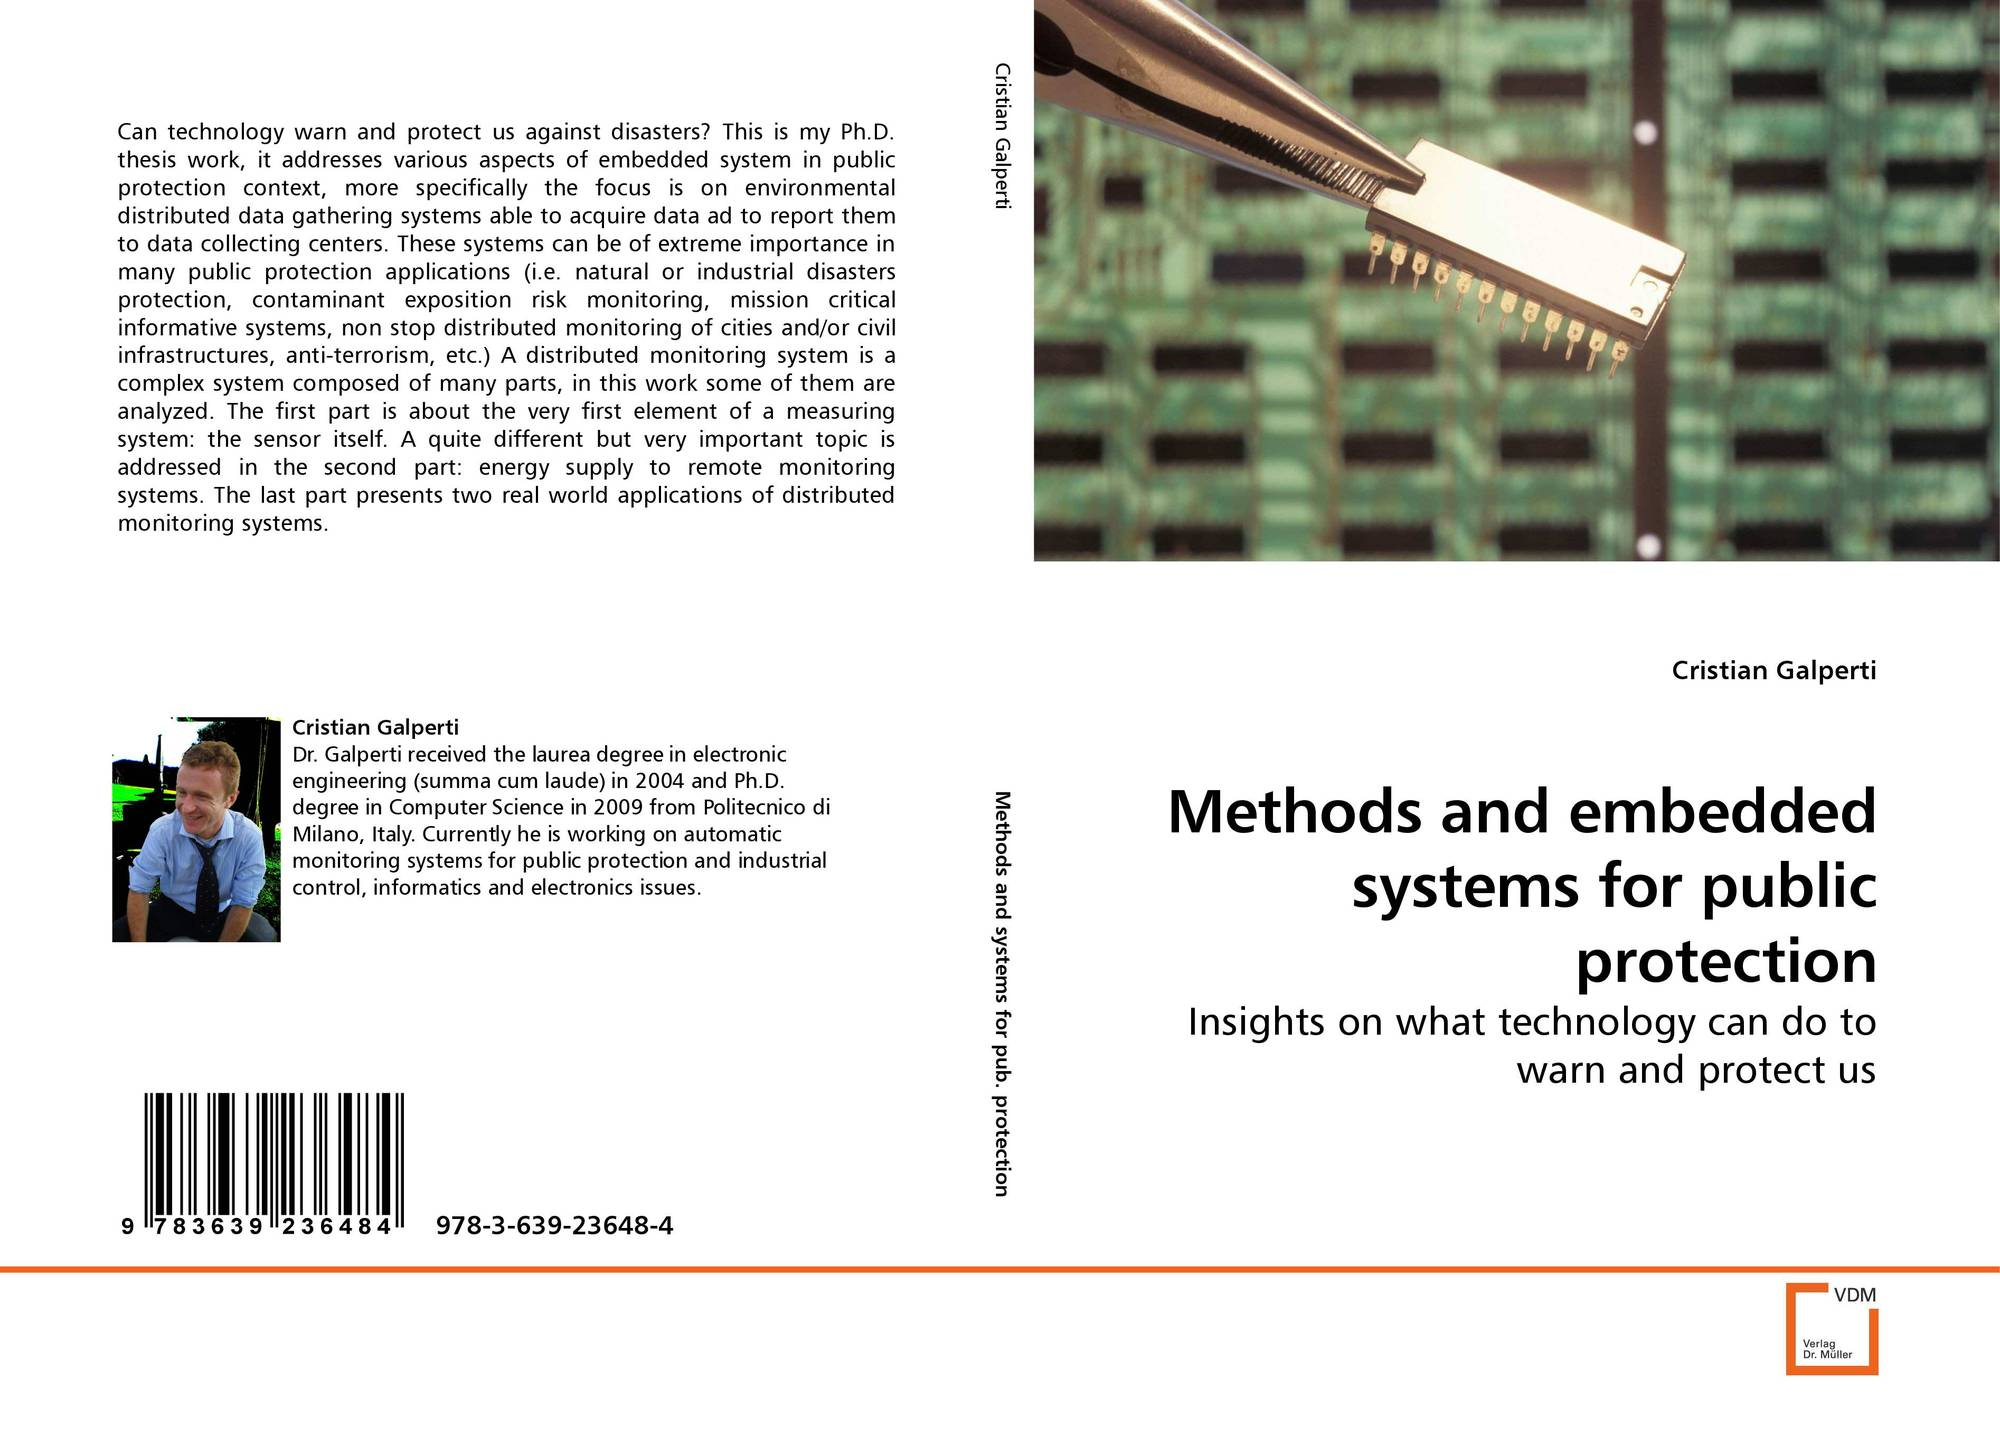 Methods and embedded systems for public protection, 978-3-639-23648